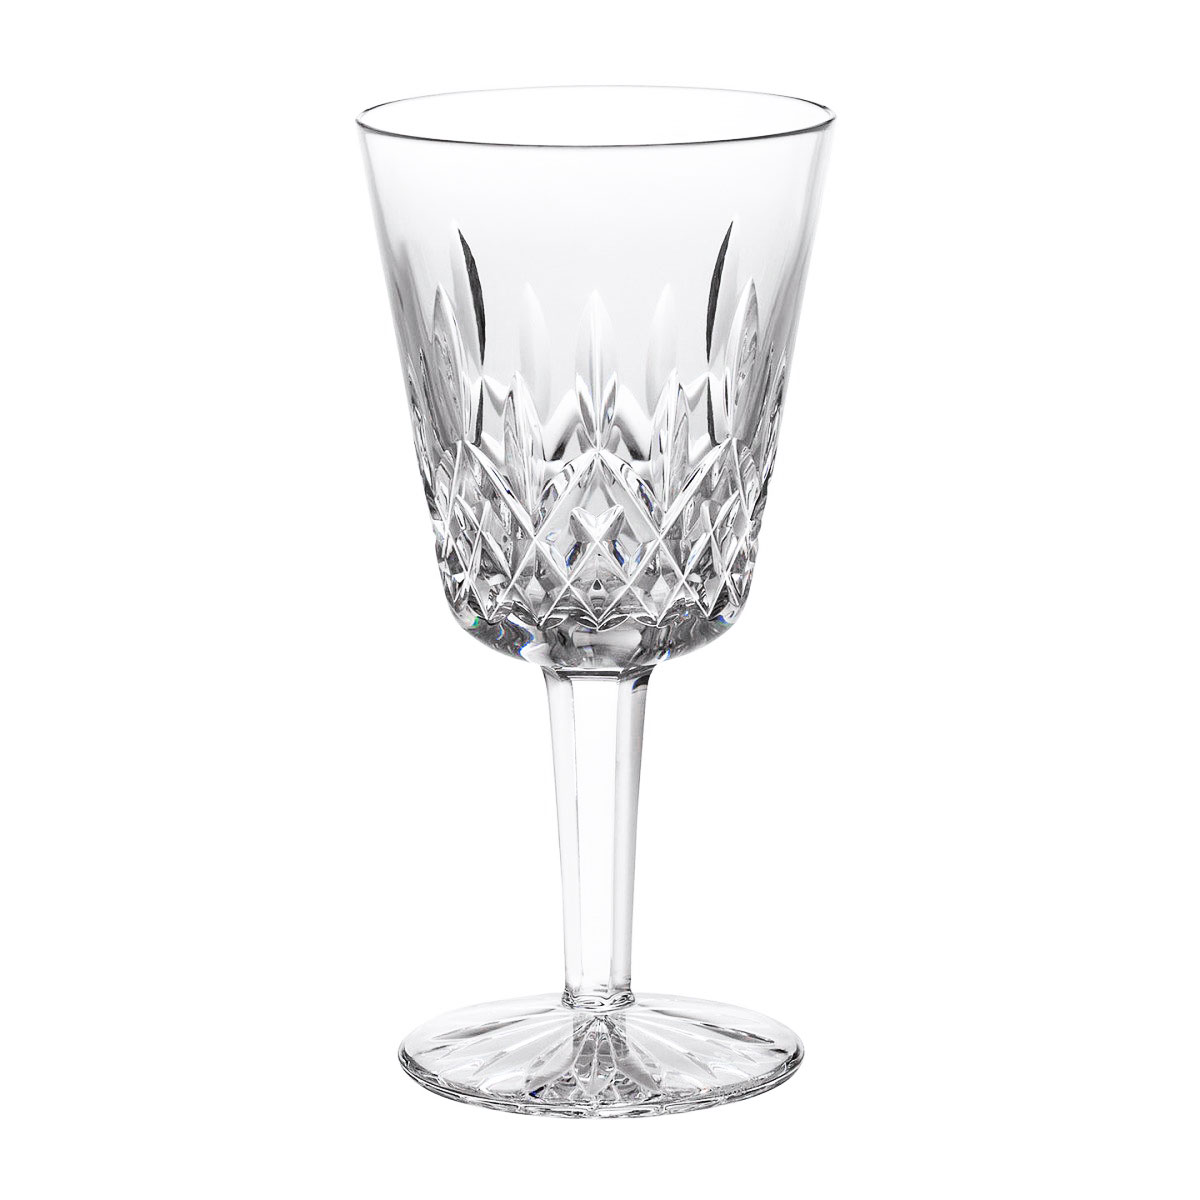 Waterford Crystal, Lismore Goblet, Single